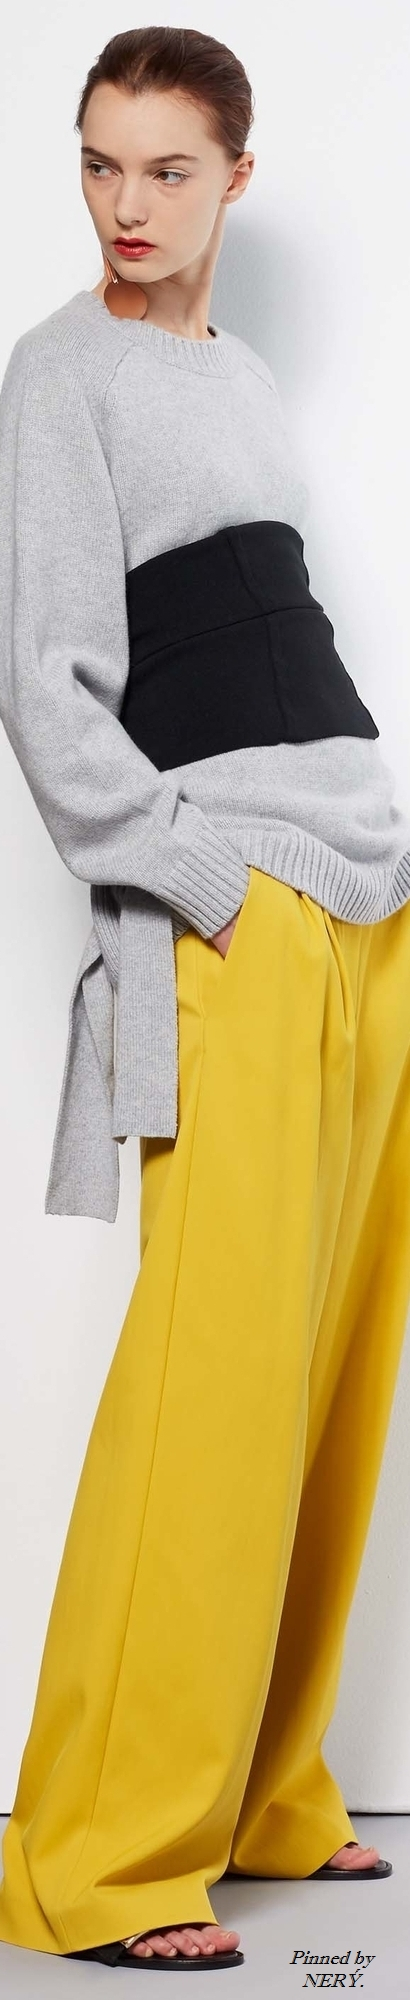 TİBİ R-17: grey sweater, black sash, yellow wide pants.